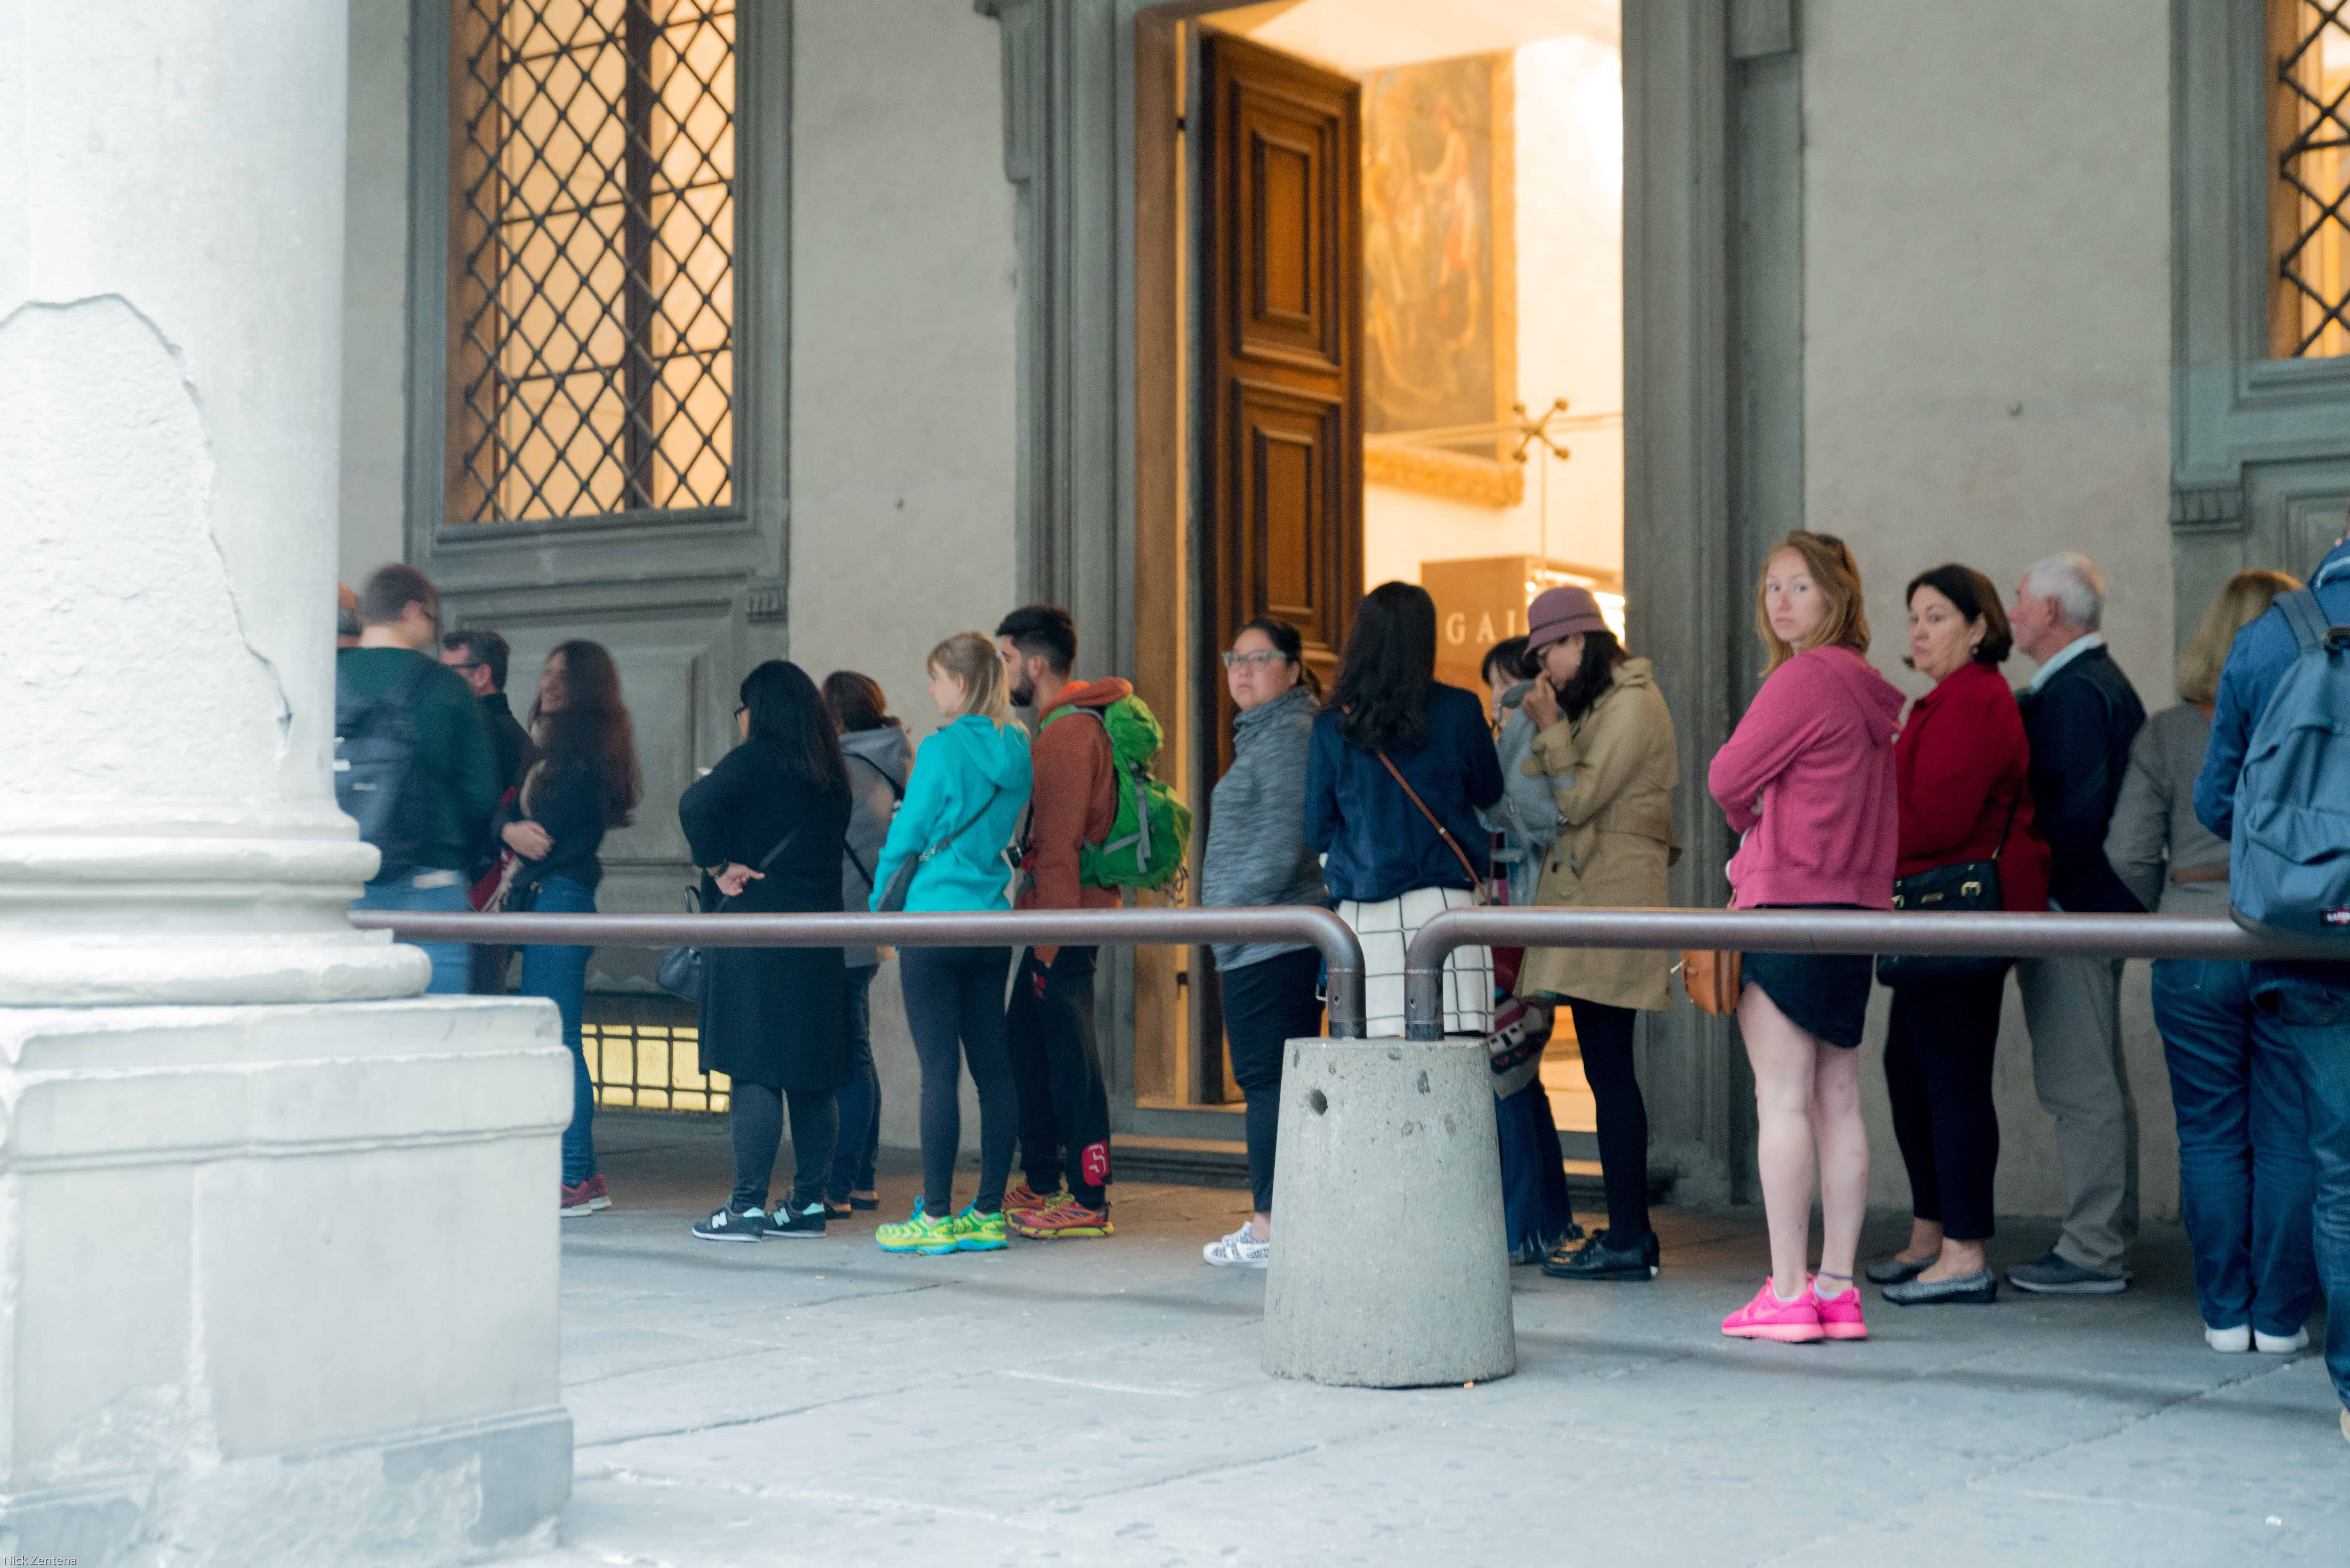 line to enter uffizi